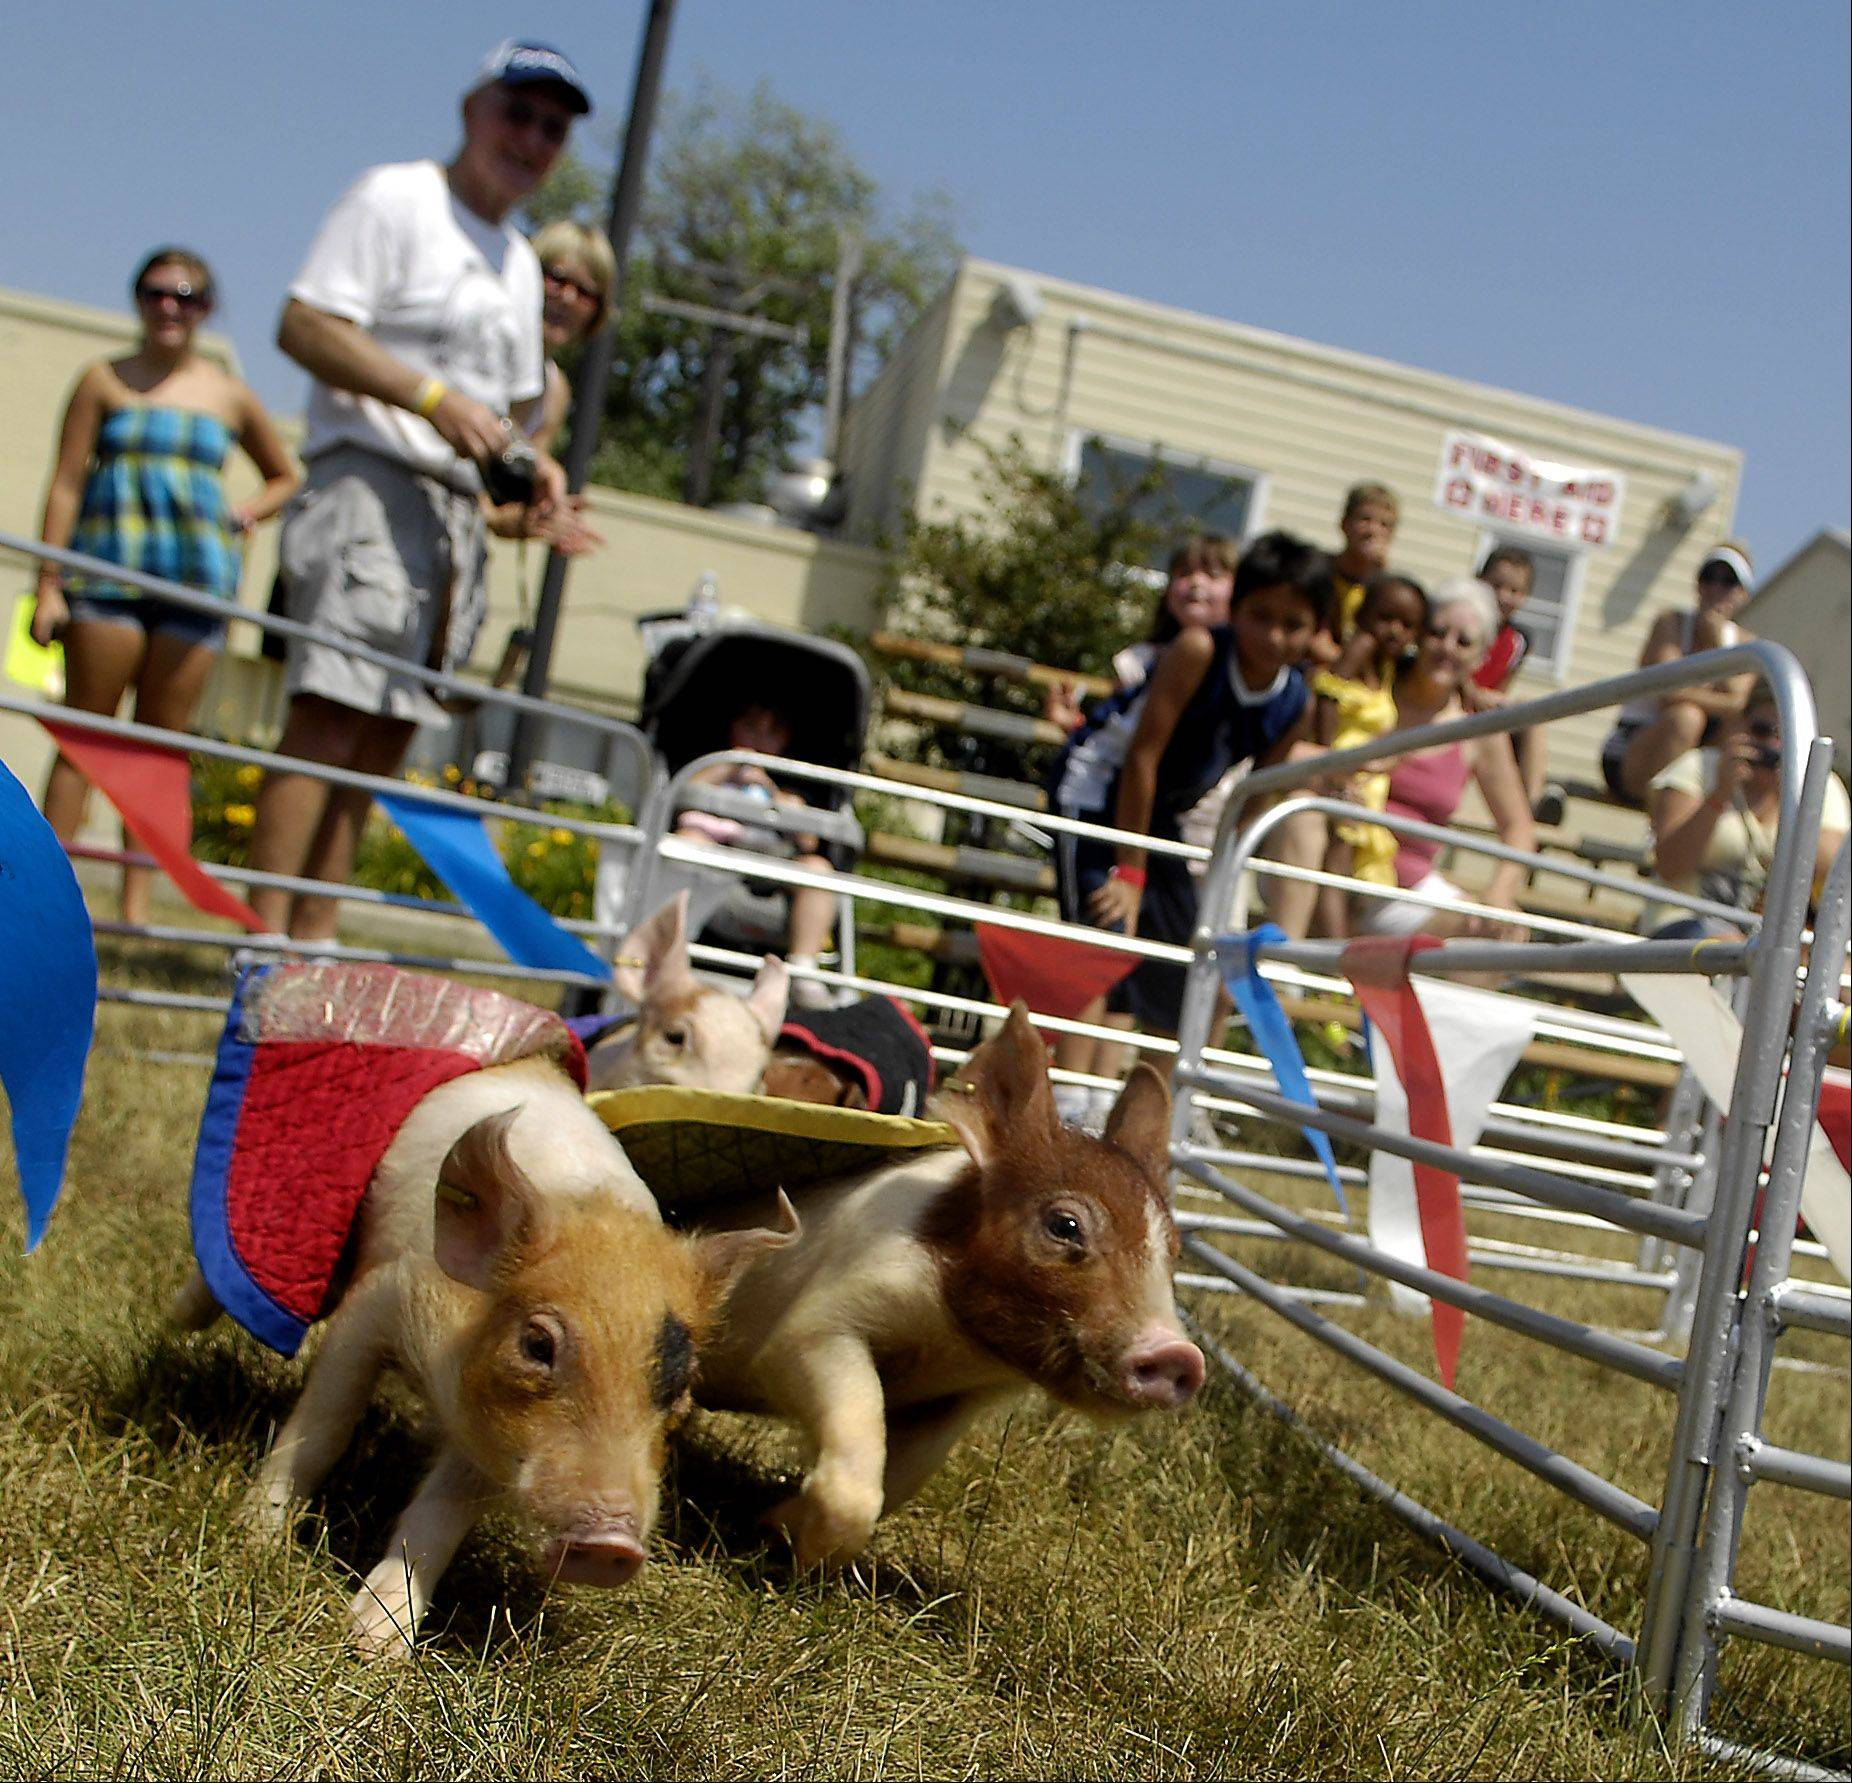 The Swifty Swine racing pigs go round the bend during day two of the Kane County Fair in St. Charles Thursday.